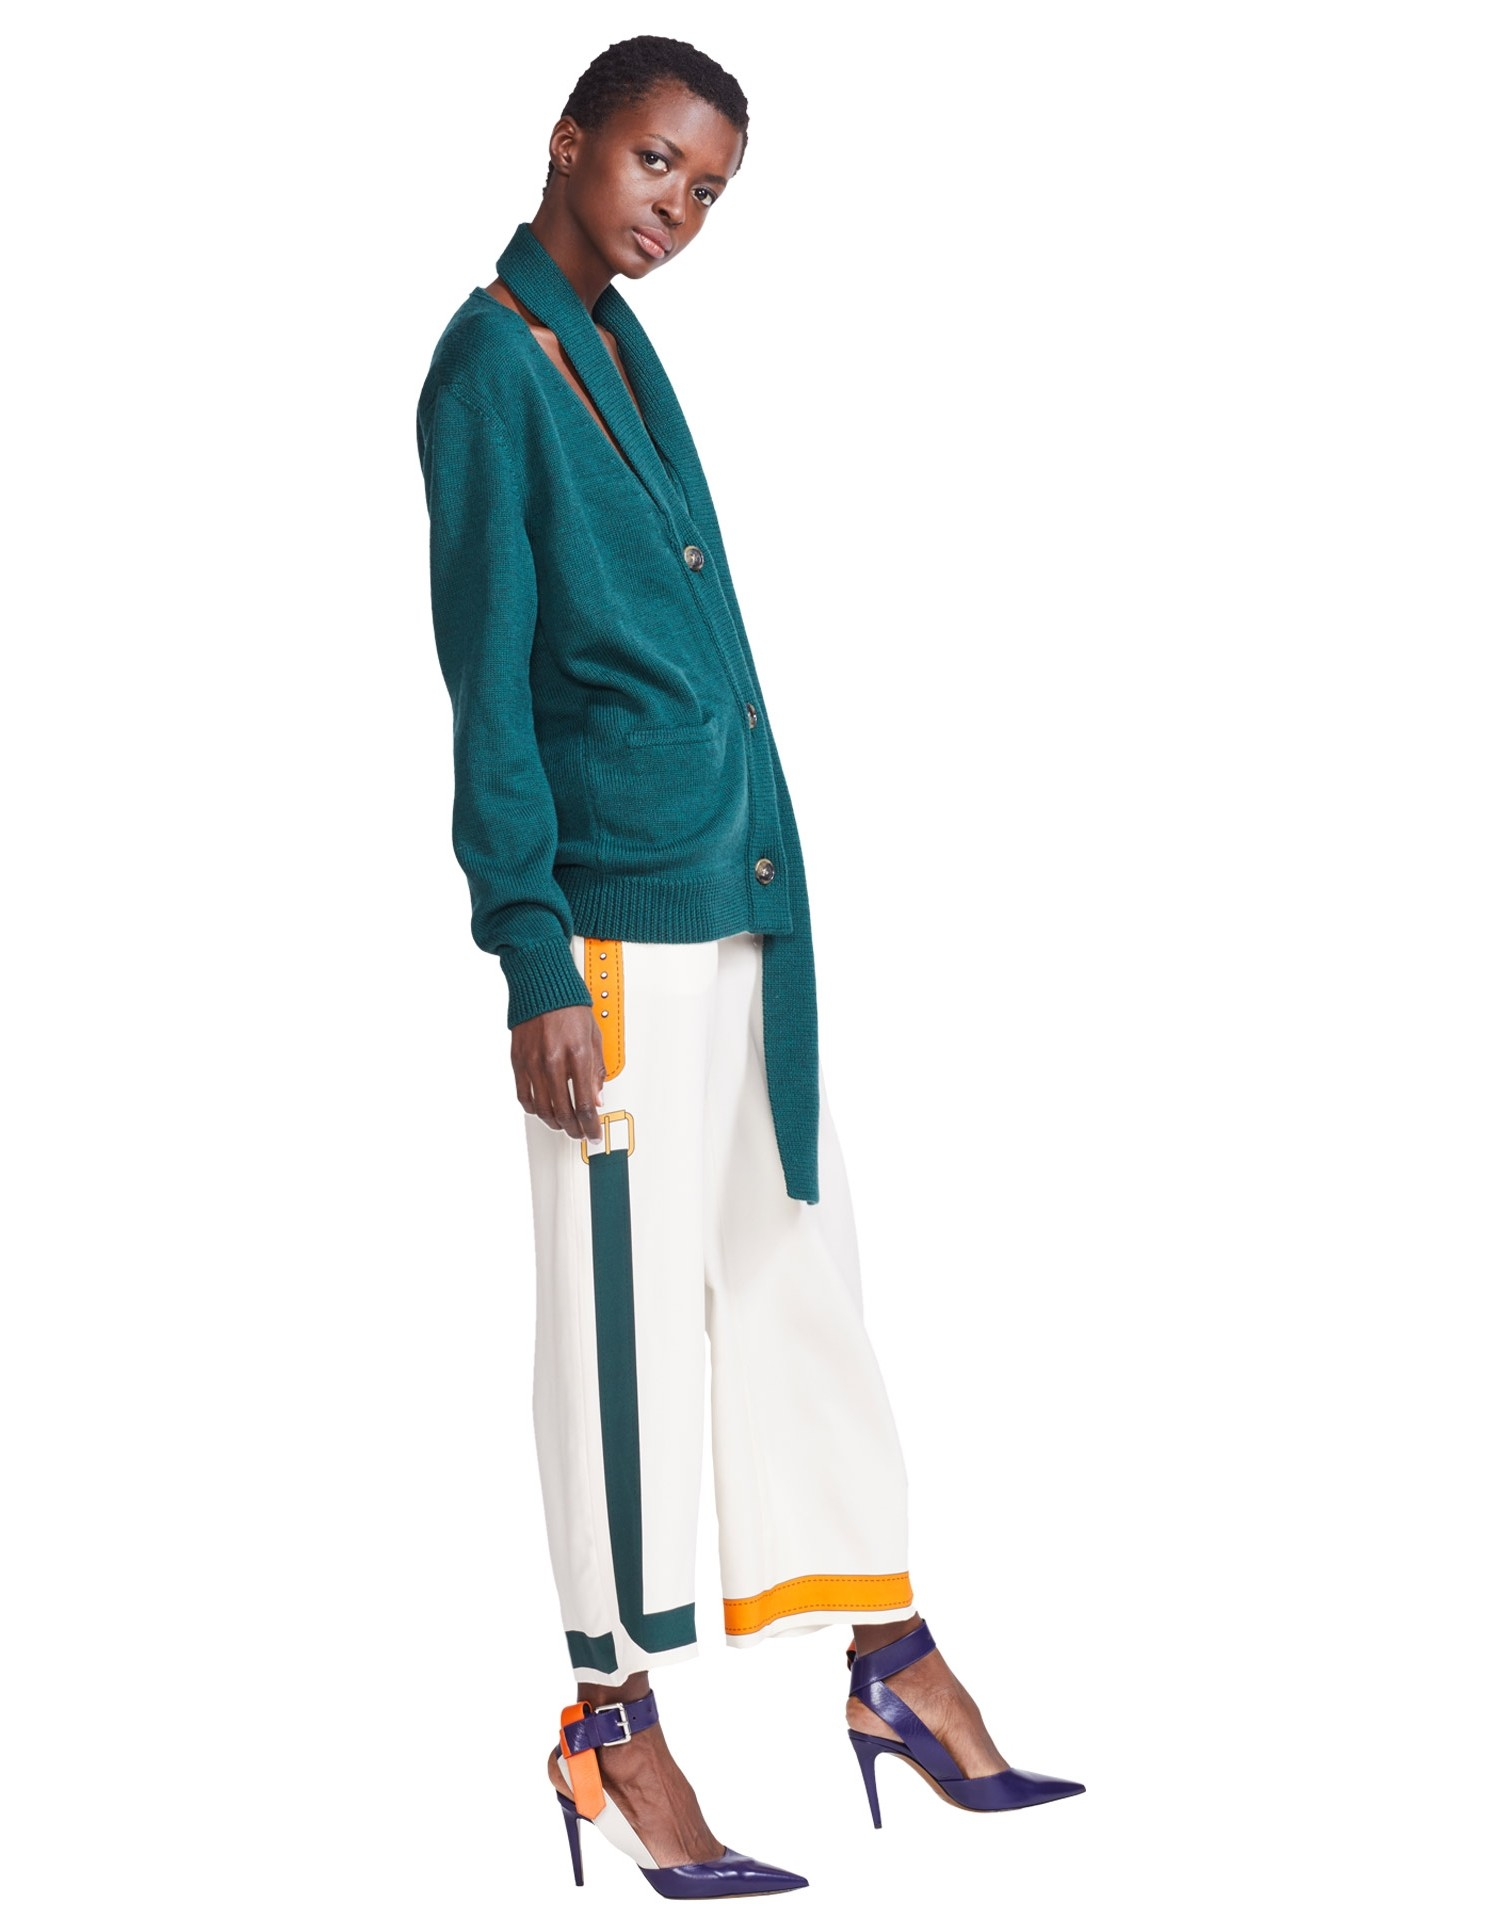 MONSE Scarf Placket Cardigan in Evergreen on Model Side View